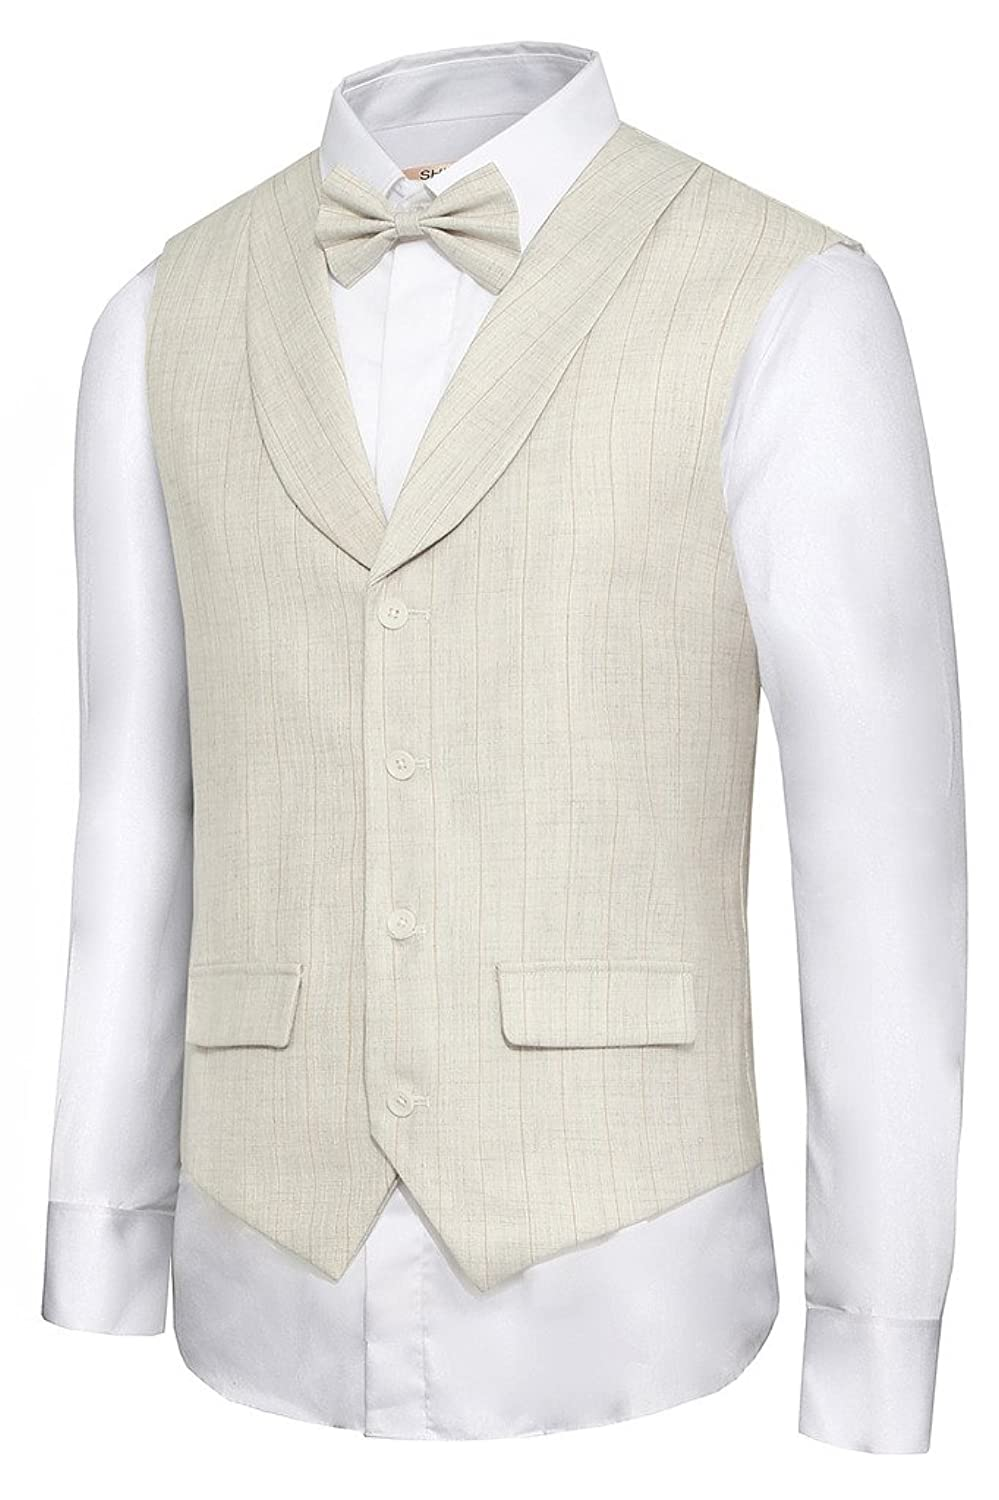 Men's Vintage Vests, Sweater Vests Hanayome Mens British Style Slim Fit Chain Point 4 Button Patry Dress vest VS09£¨BeigeM) $28.50 AT vintagedancer.com